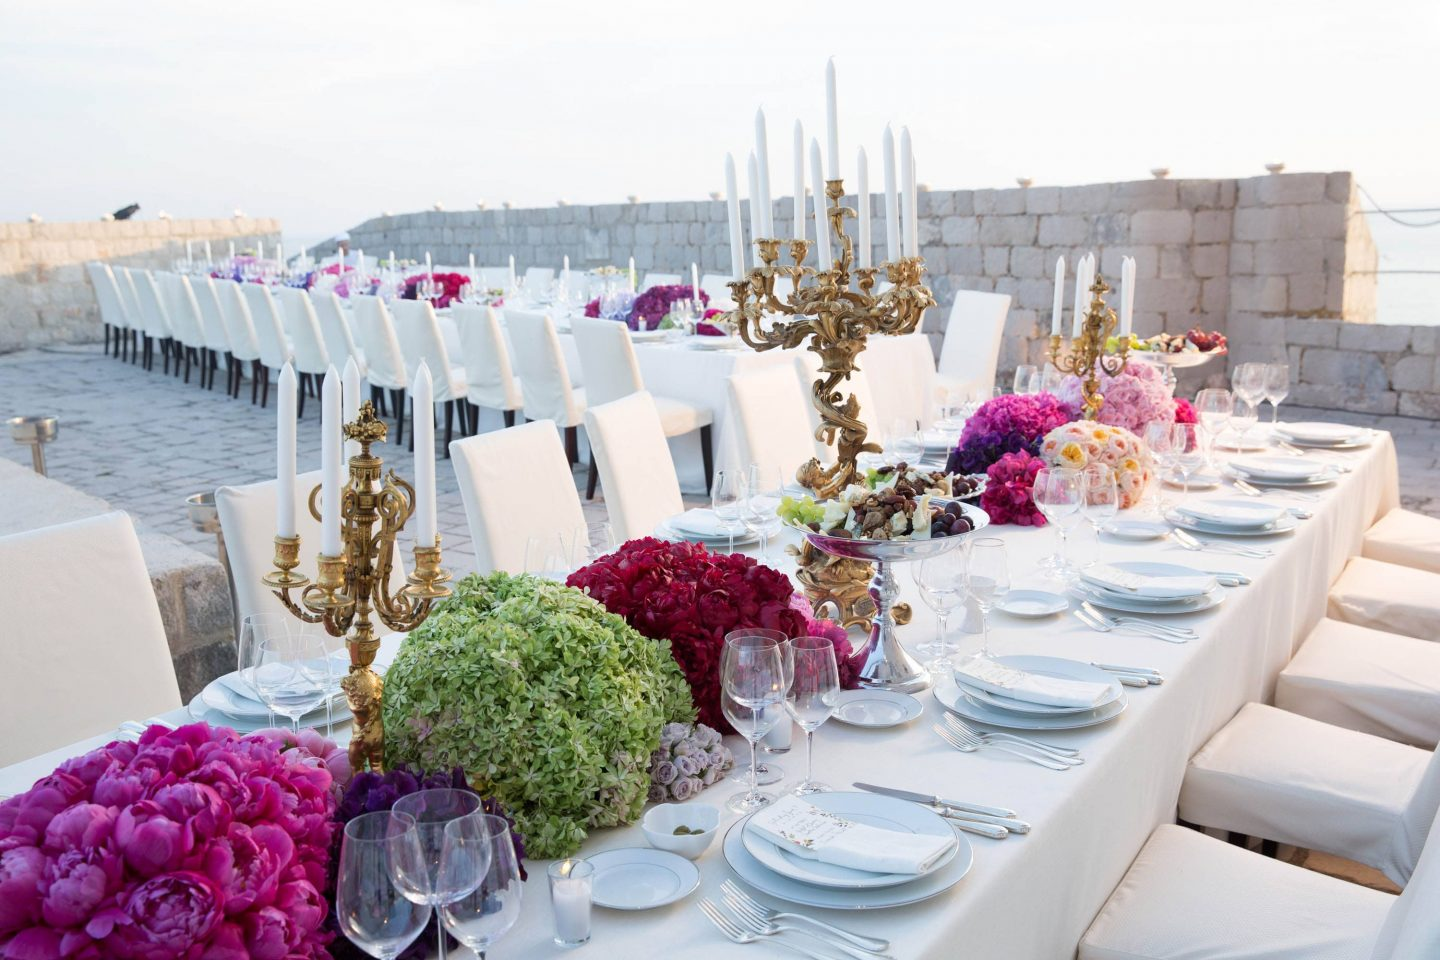 Evening dinner table decor at Fort Lovrijenac at this Dubrovnik wedding in Croatia | Photo by Robert Fairer